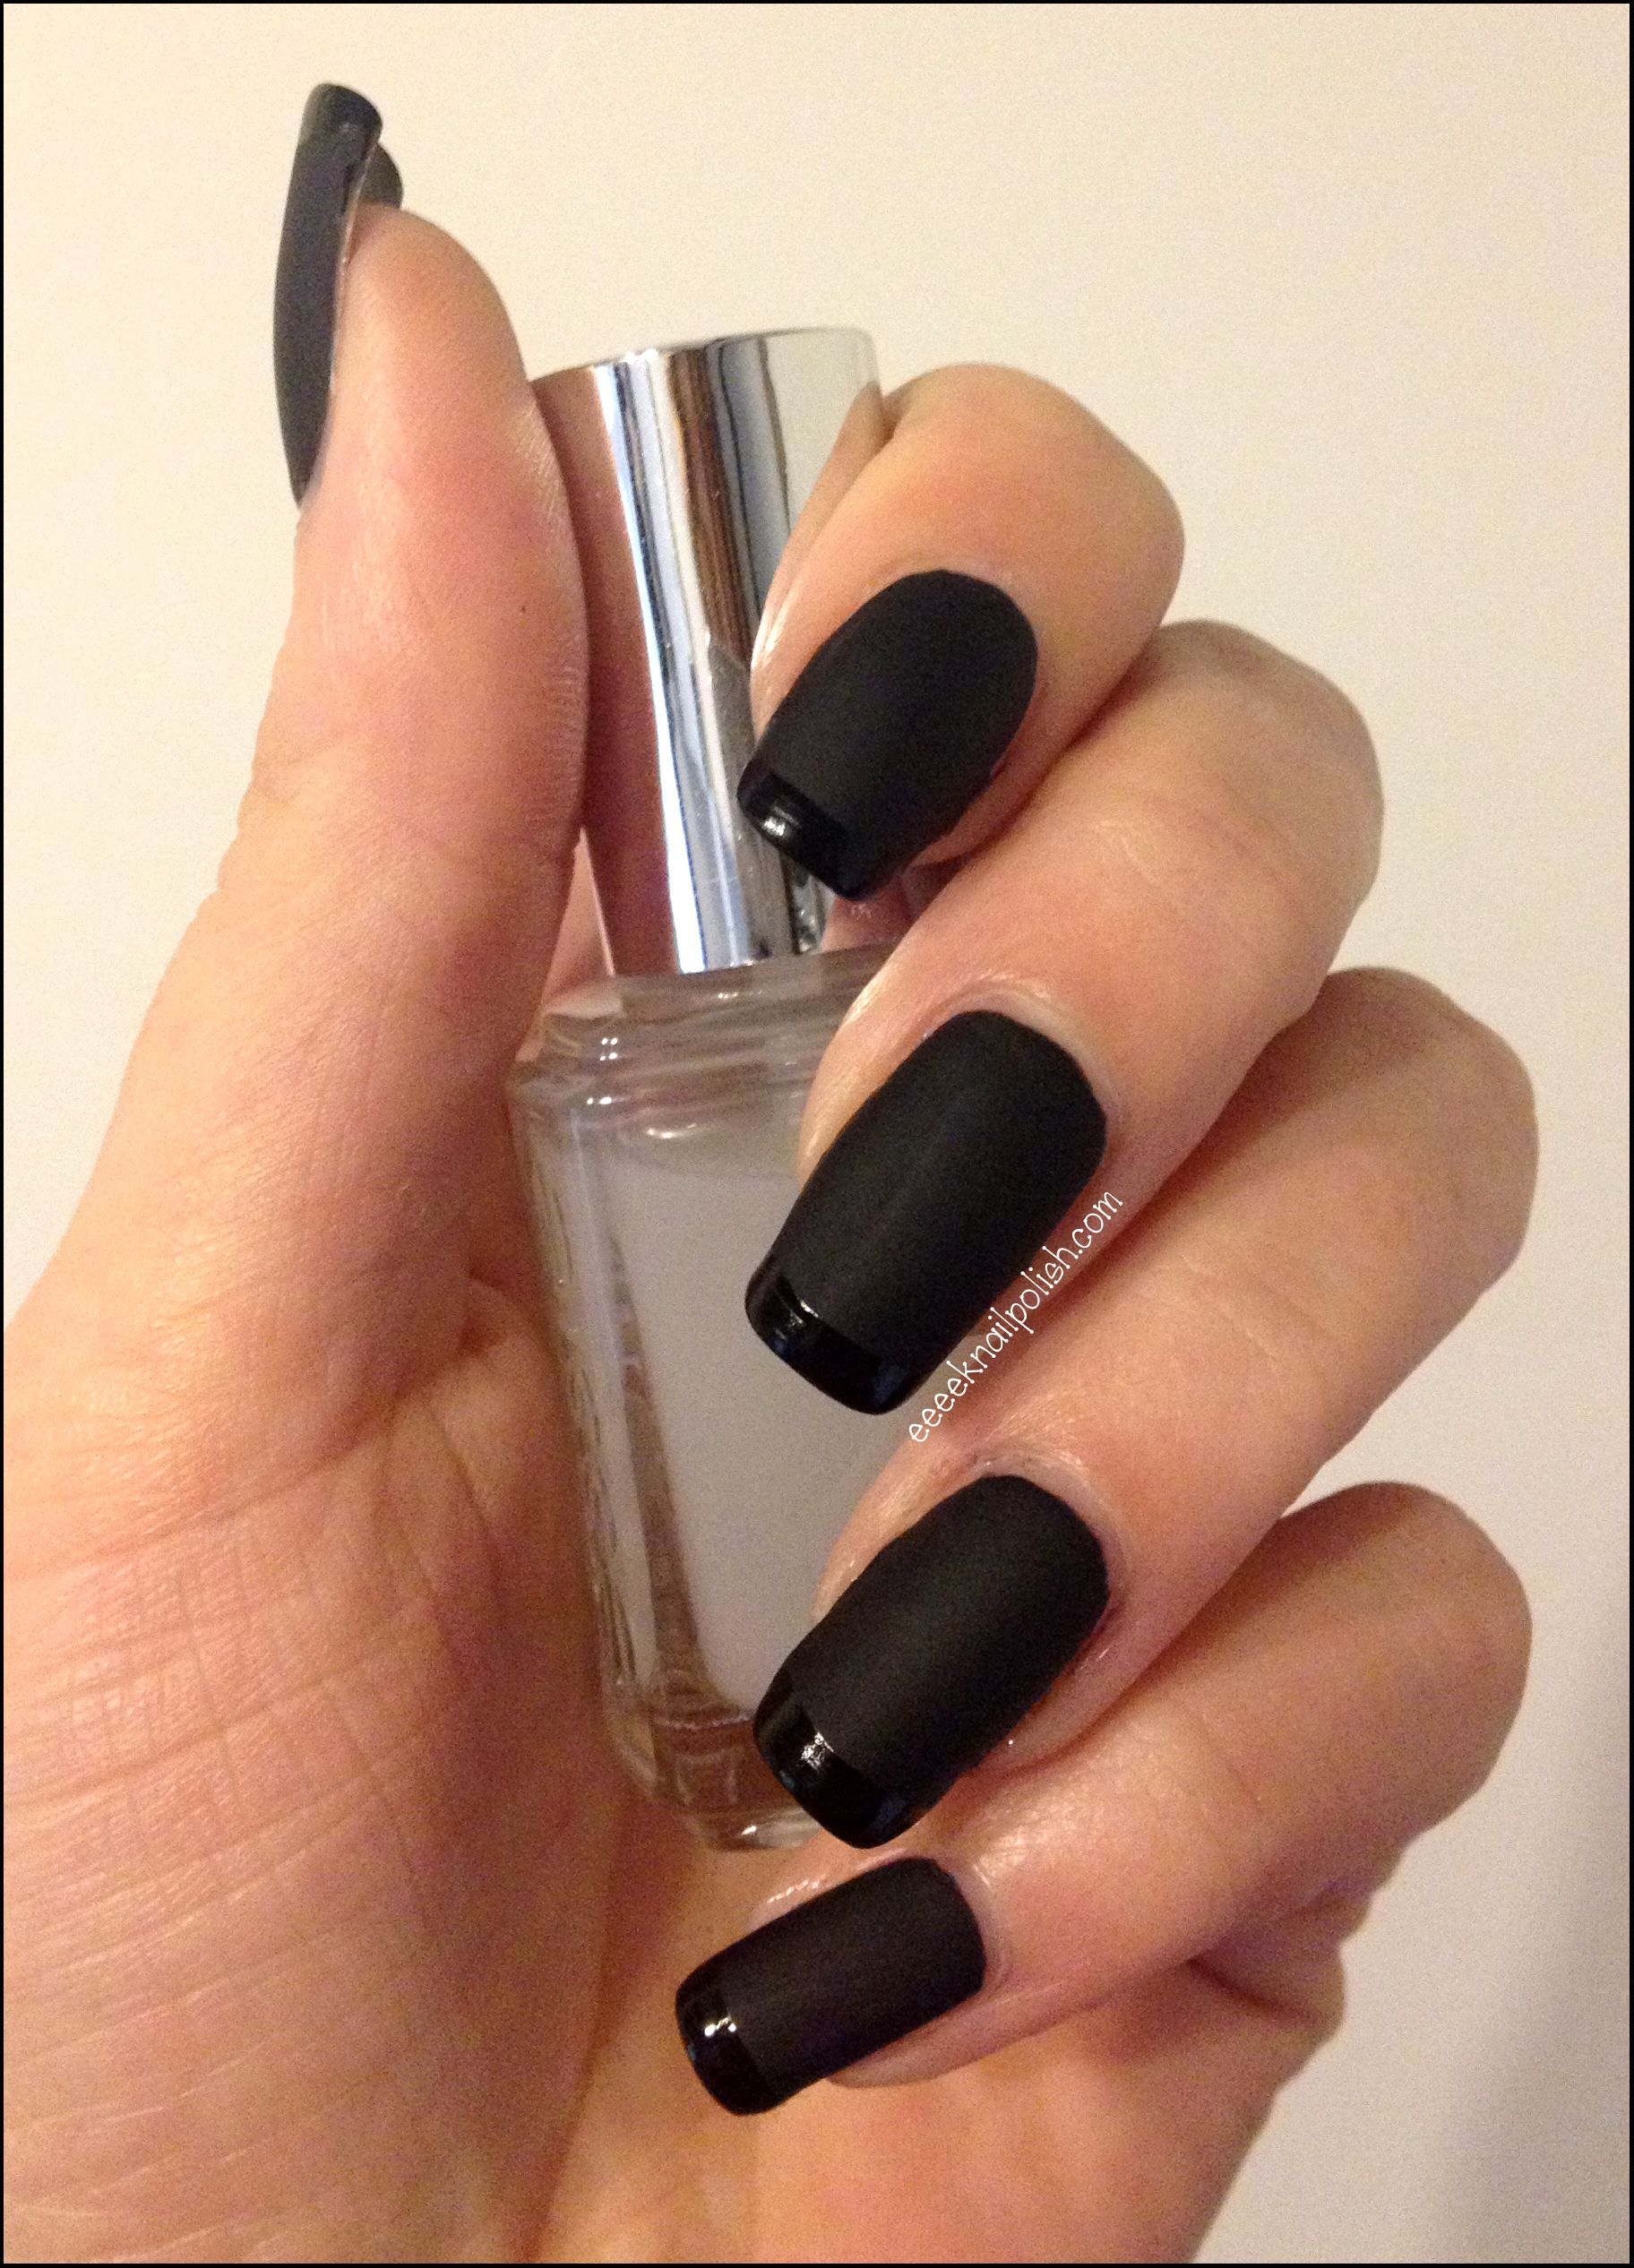 Black French Jpg 1 824 2 532 Pixels French Manicure Acrylic Nails Manicure Gel Manicure Colors